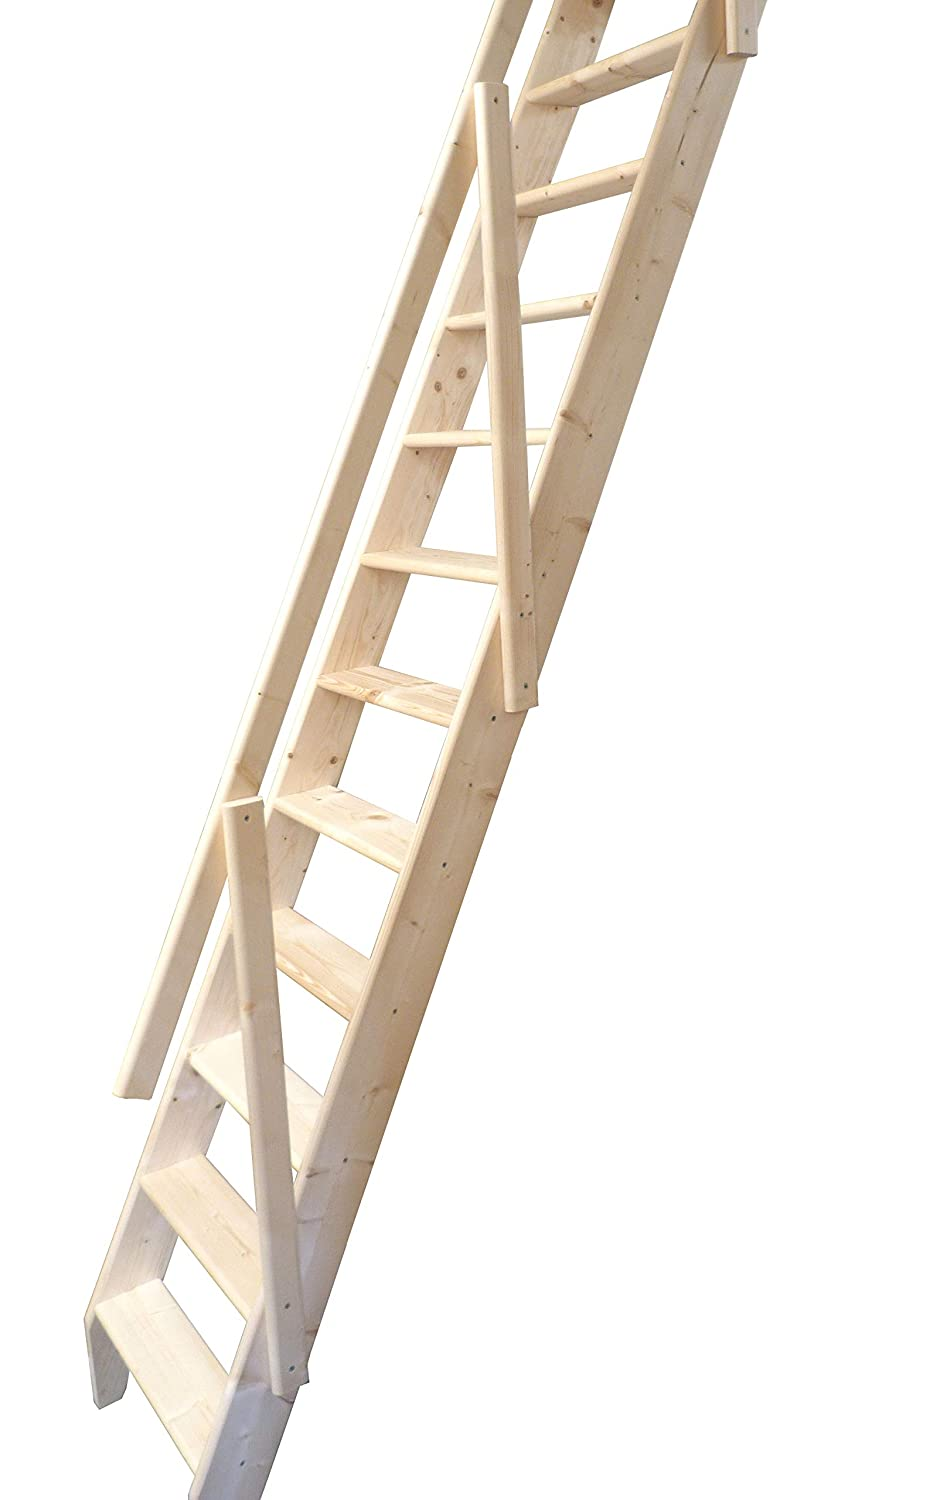 Dolle Arundel Wooden Space Saver Staircase (Loft Stair) c/w Ladder Slide System